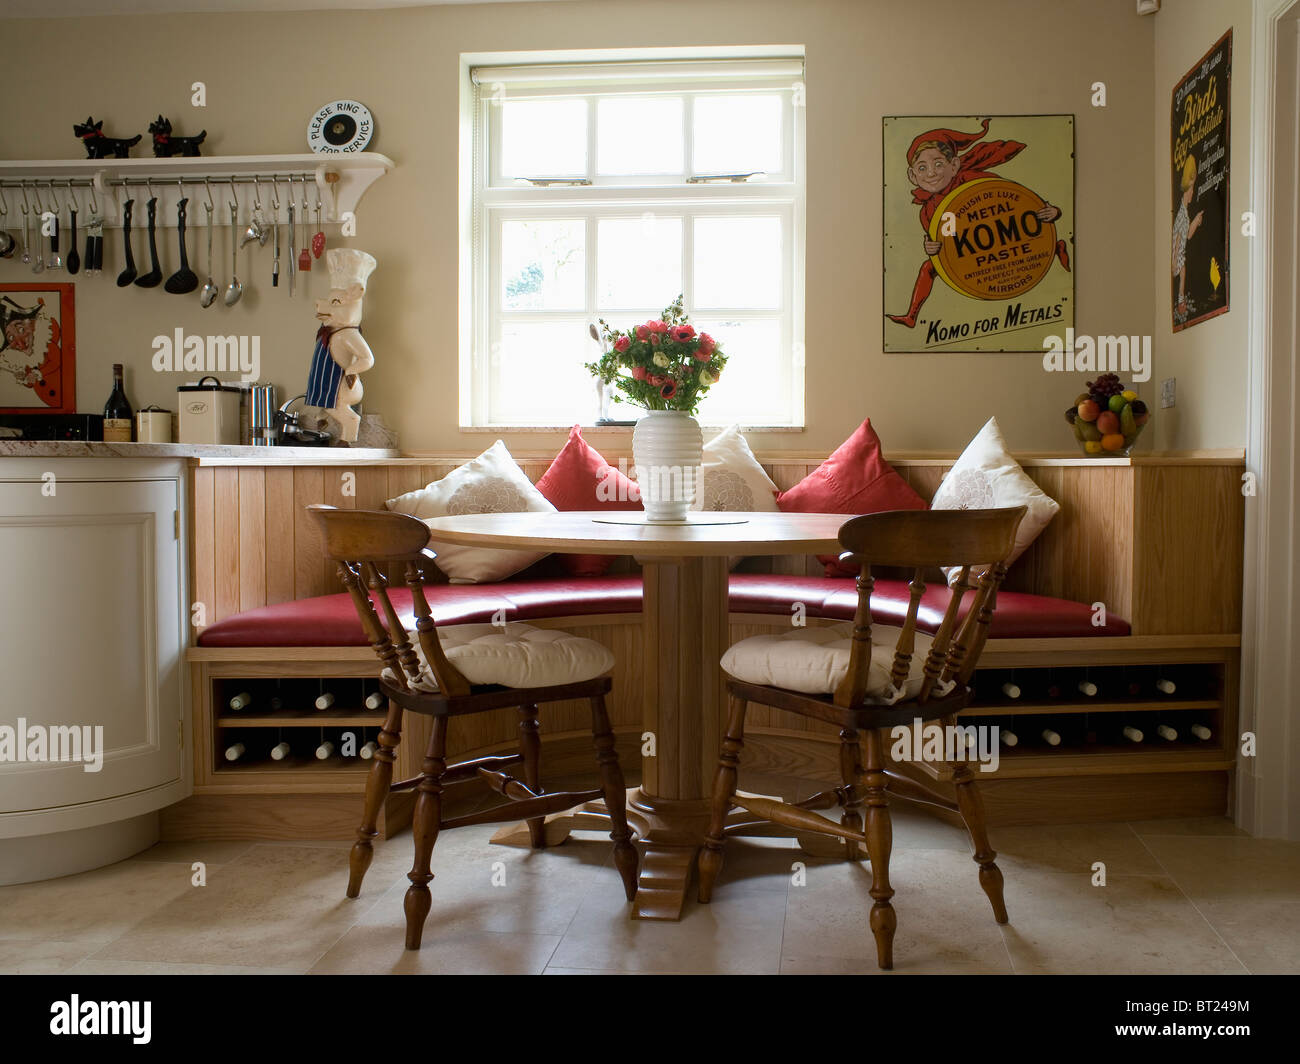 Old Wooden Dining Room Chairs circular table and old wooden chairs in kitchen dining room with